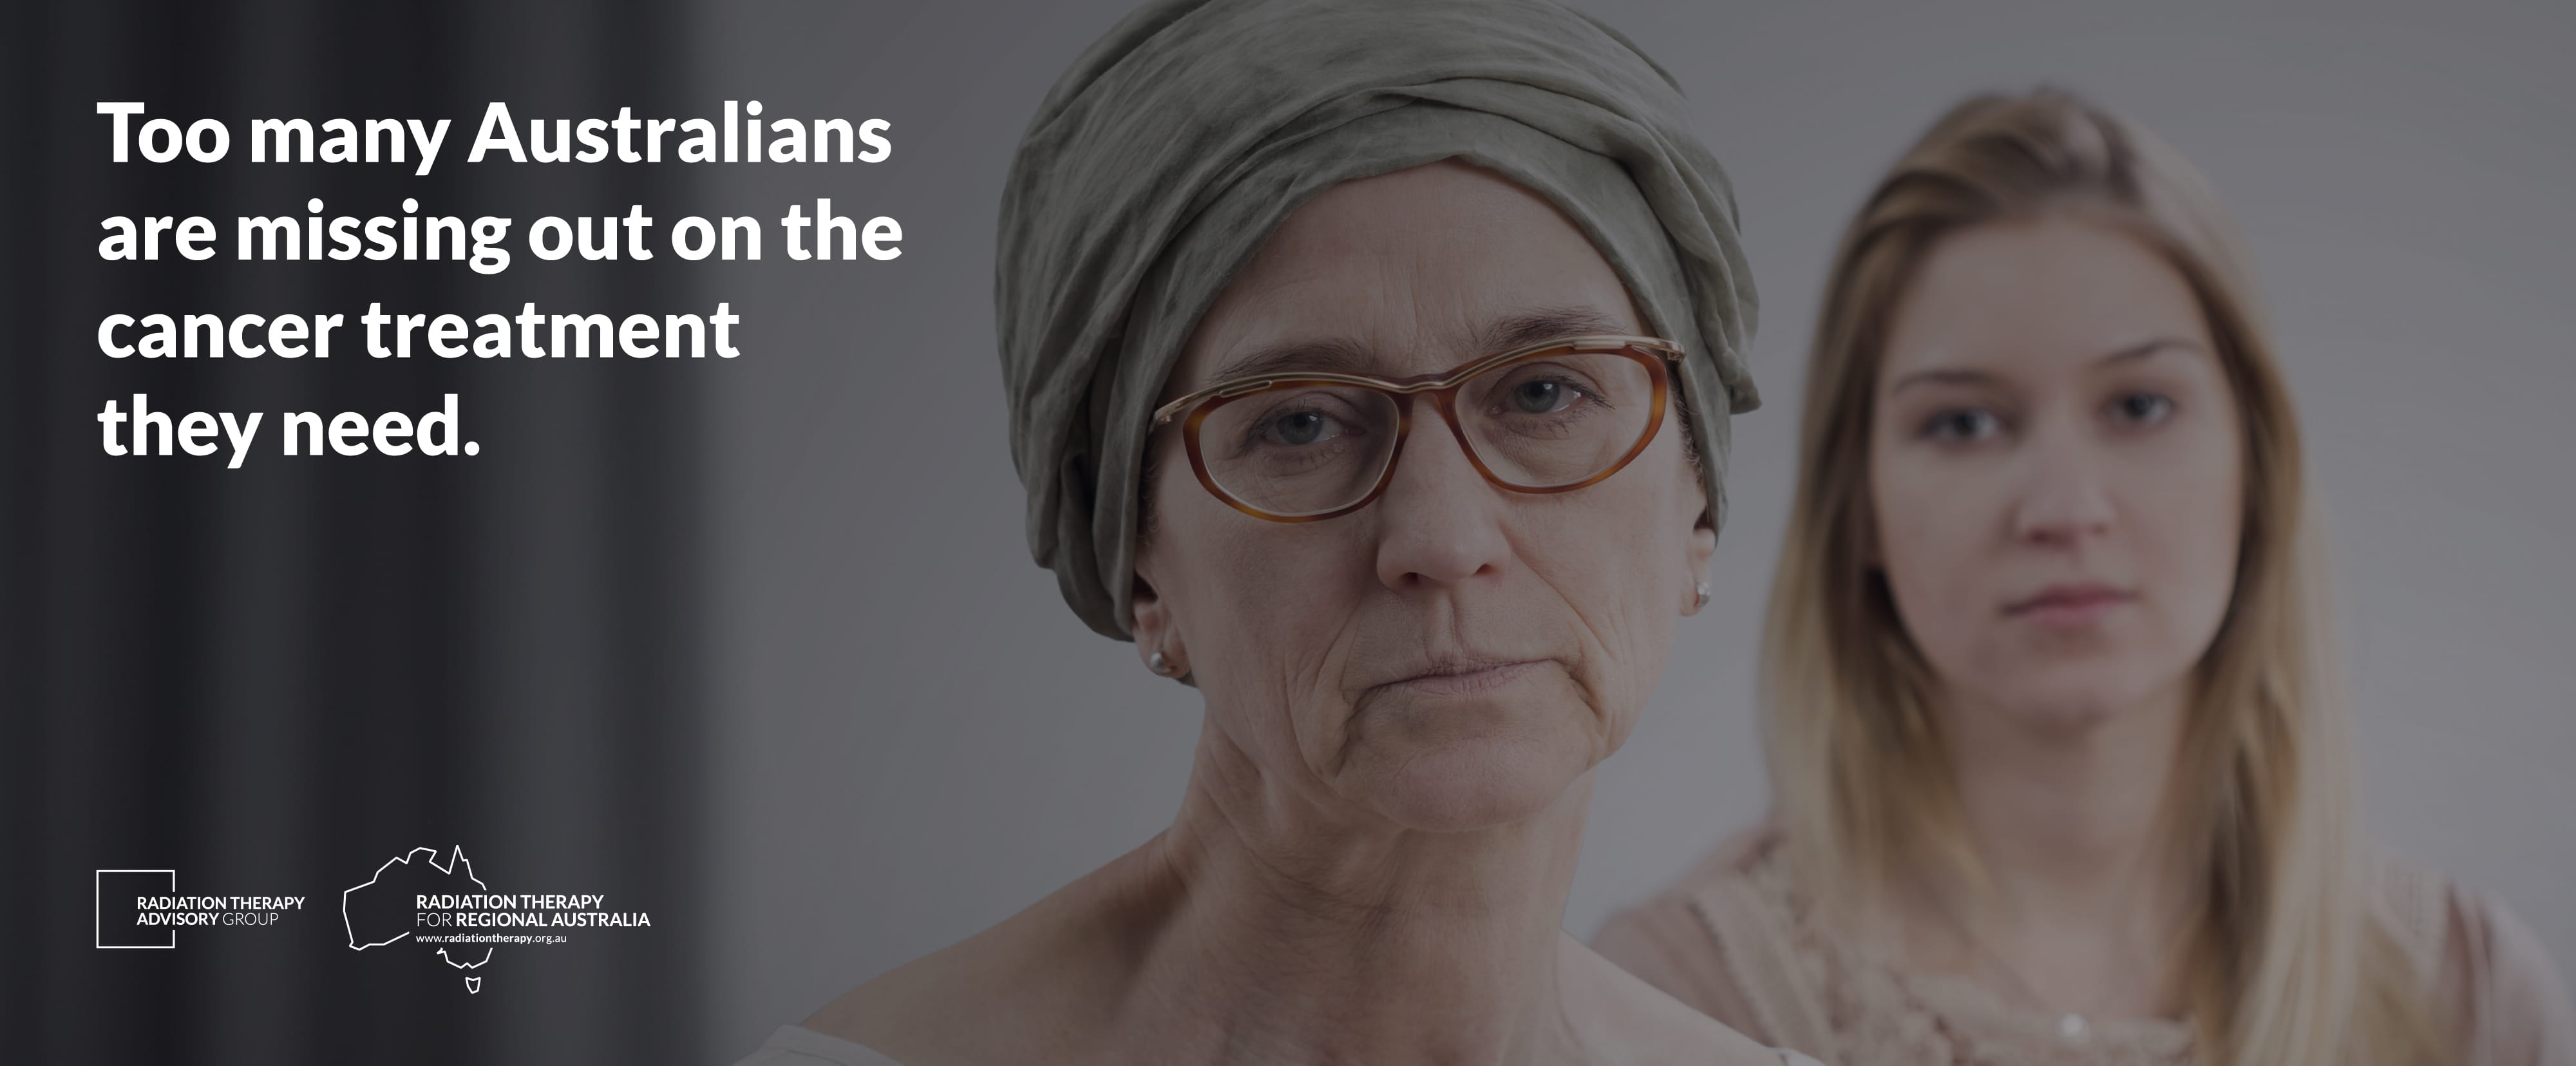 Too many Australians are missing out on the cancer treatment they need.